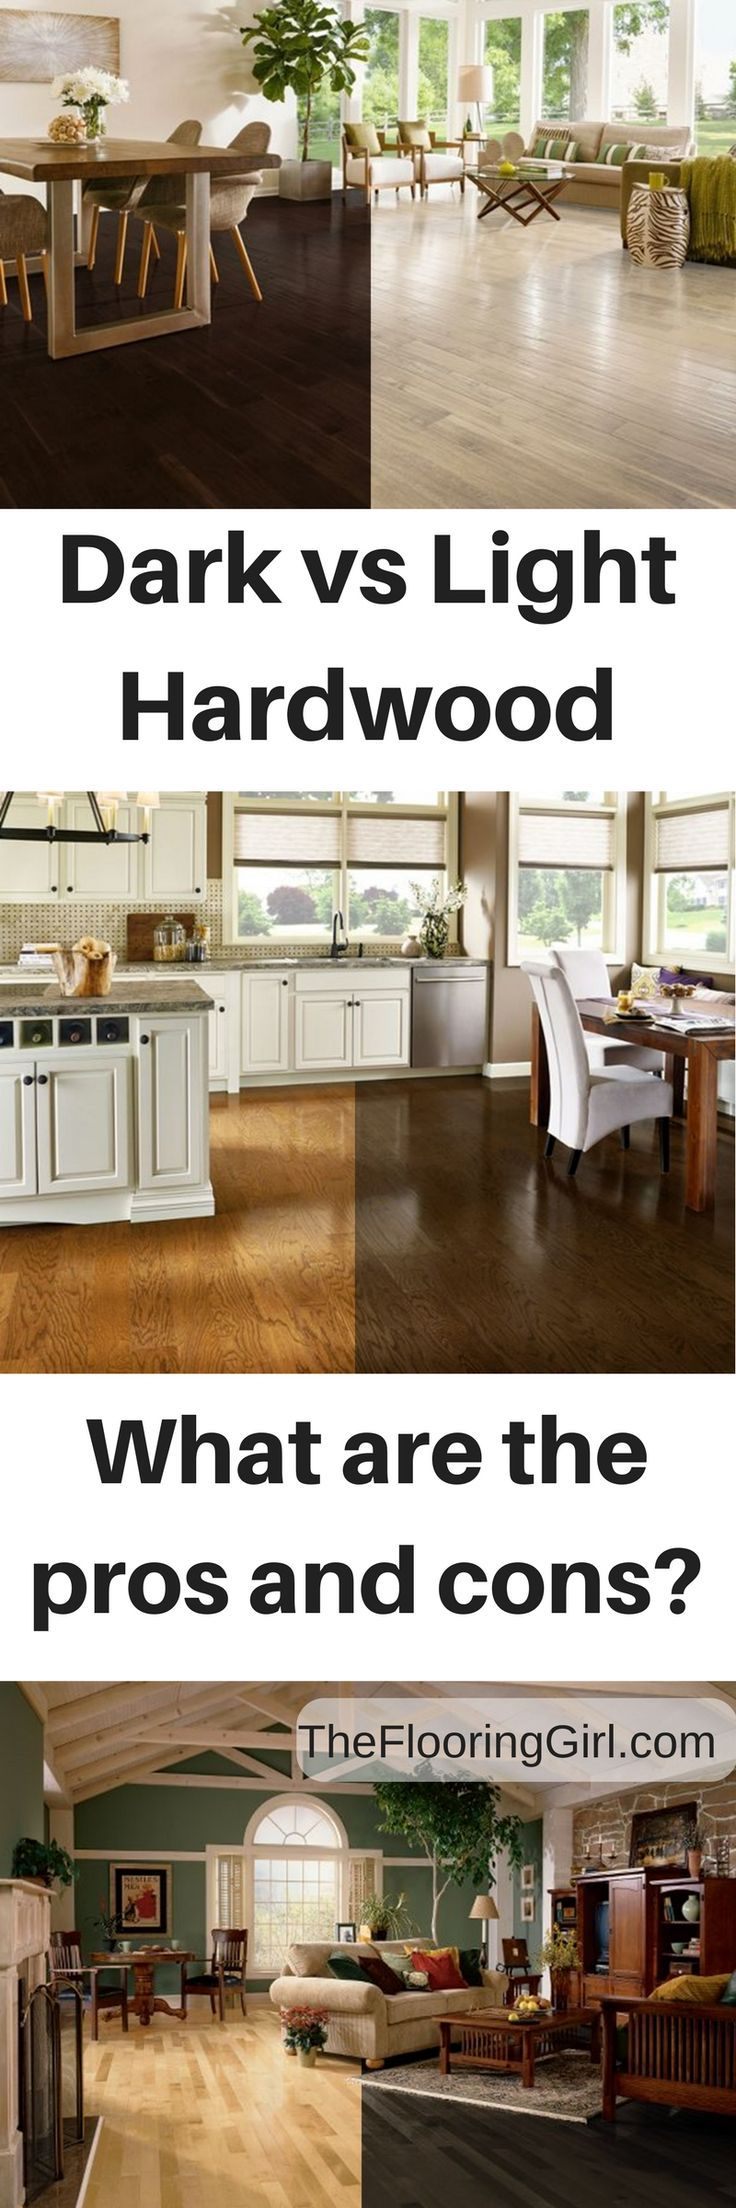 Dark Floors Vs Light Floors   Pros And Cons